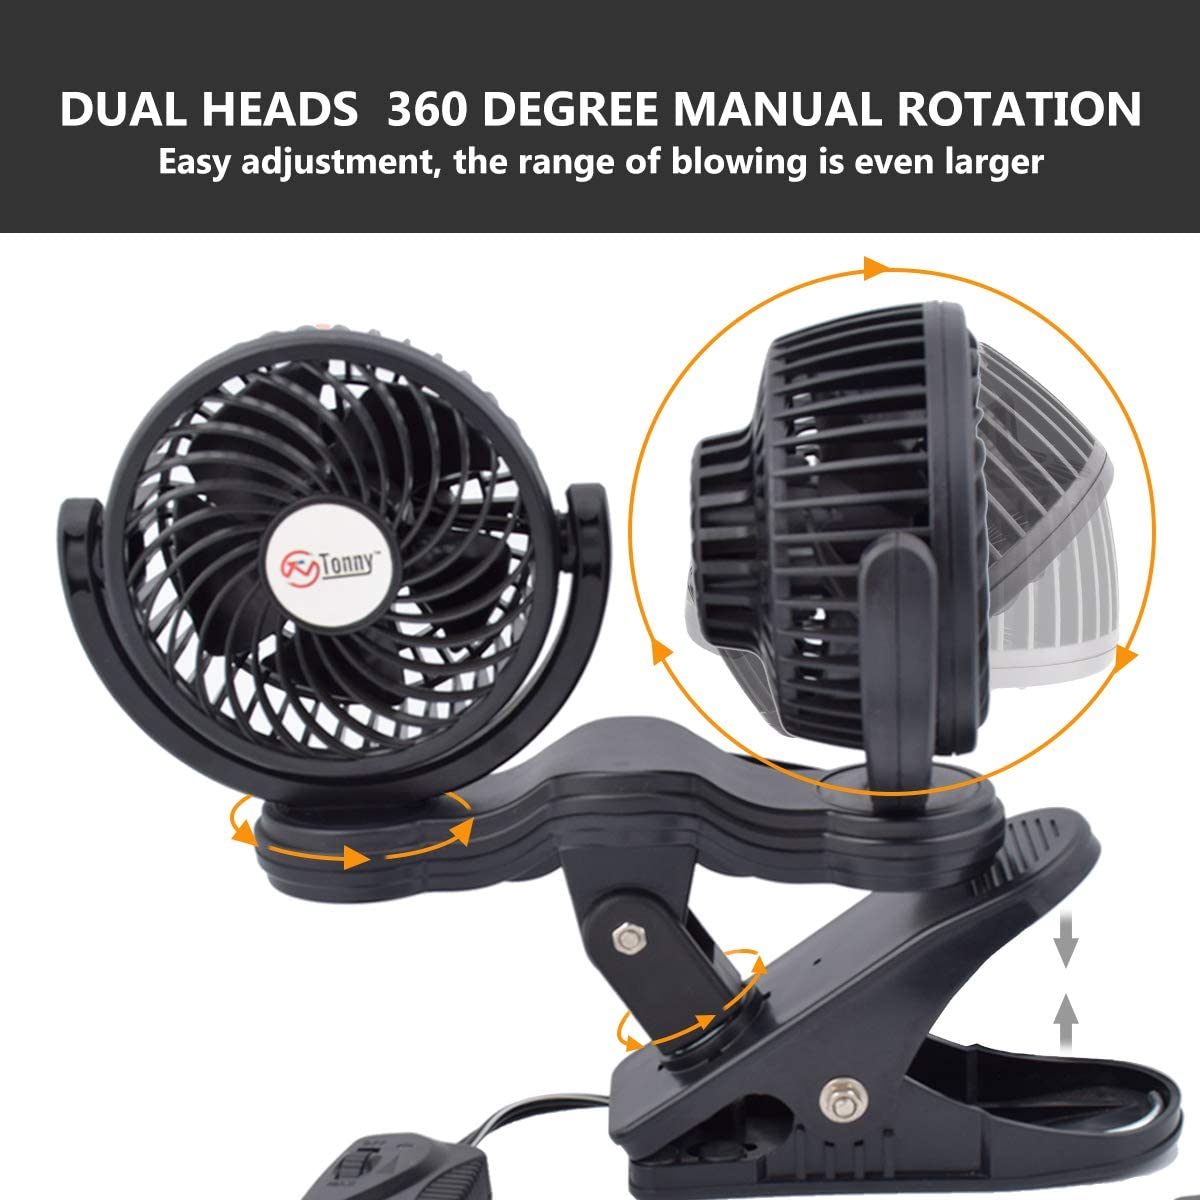 TN TONNY Dual Head Clip Fan 4 Inches Electric Car Clip Fans 360/° Rotatable,12V Cooling Air Fan with Stepless Speed Regulation for Vehicle or Home